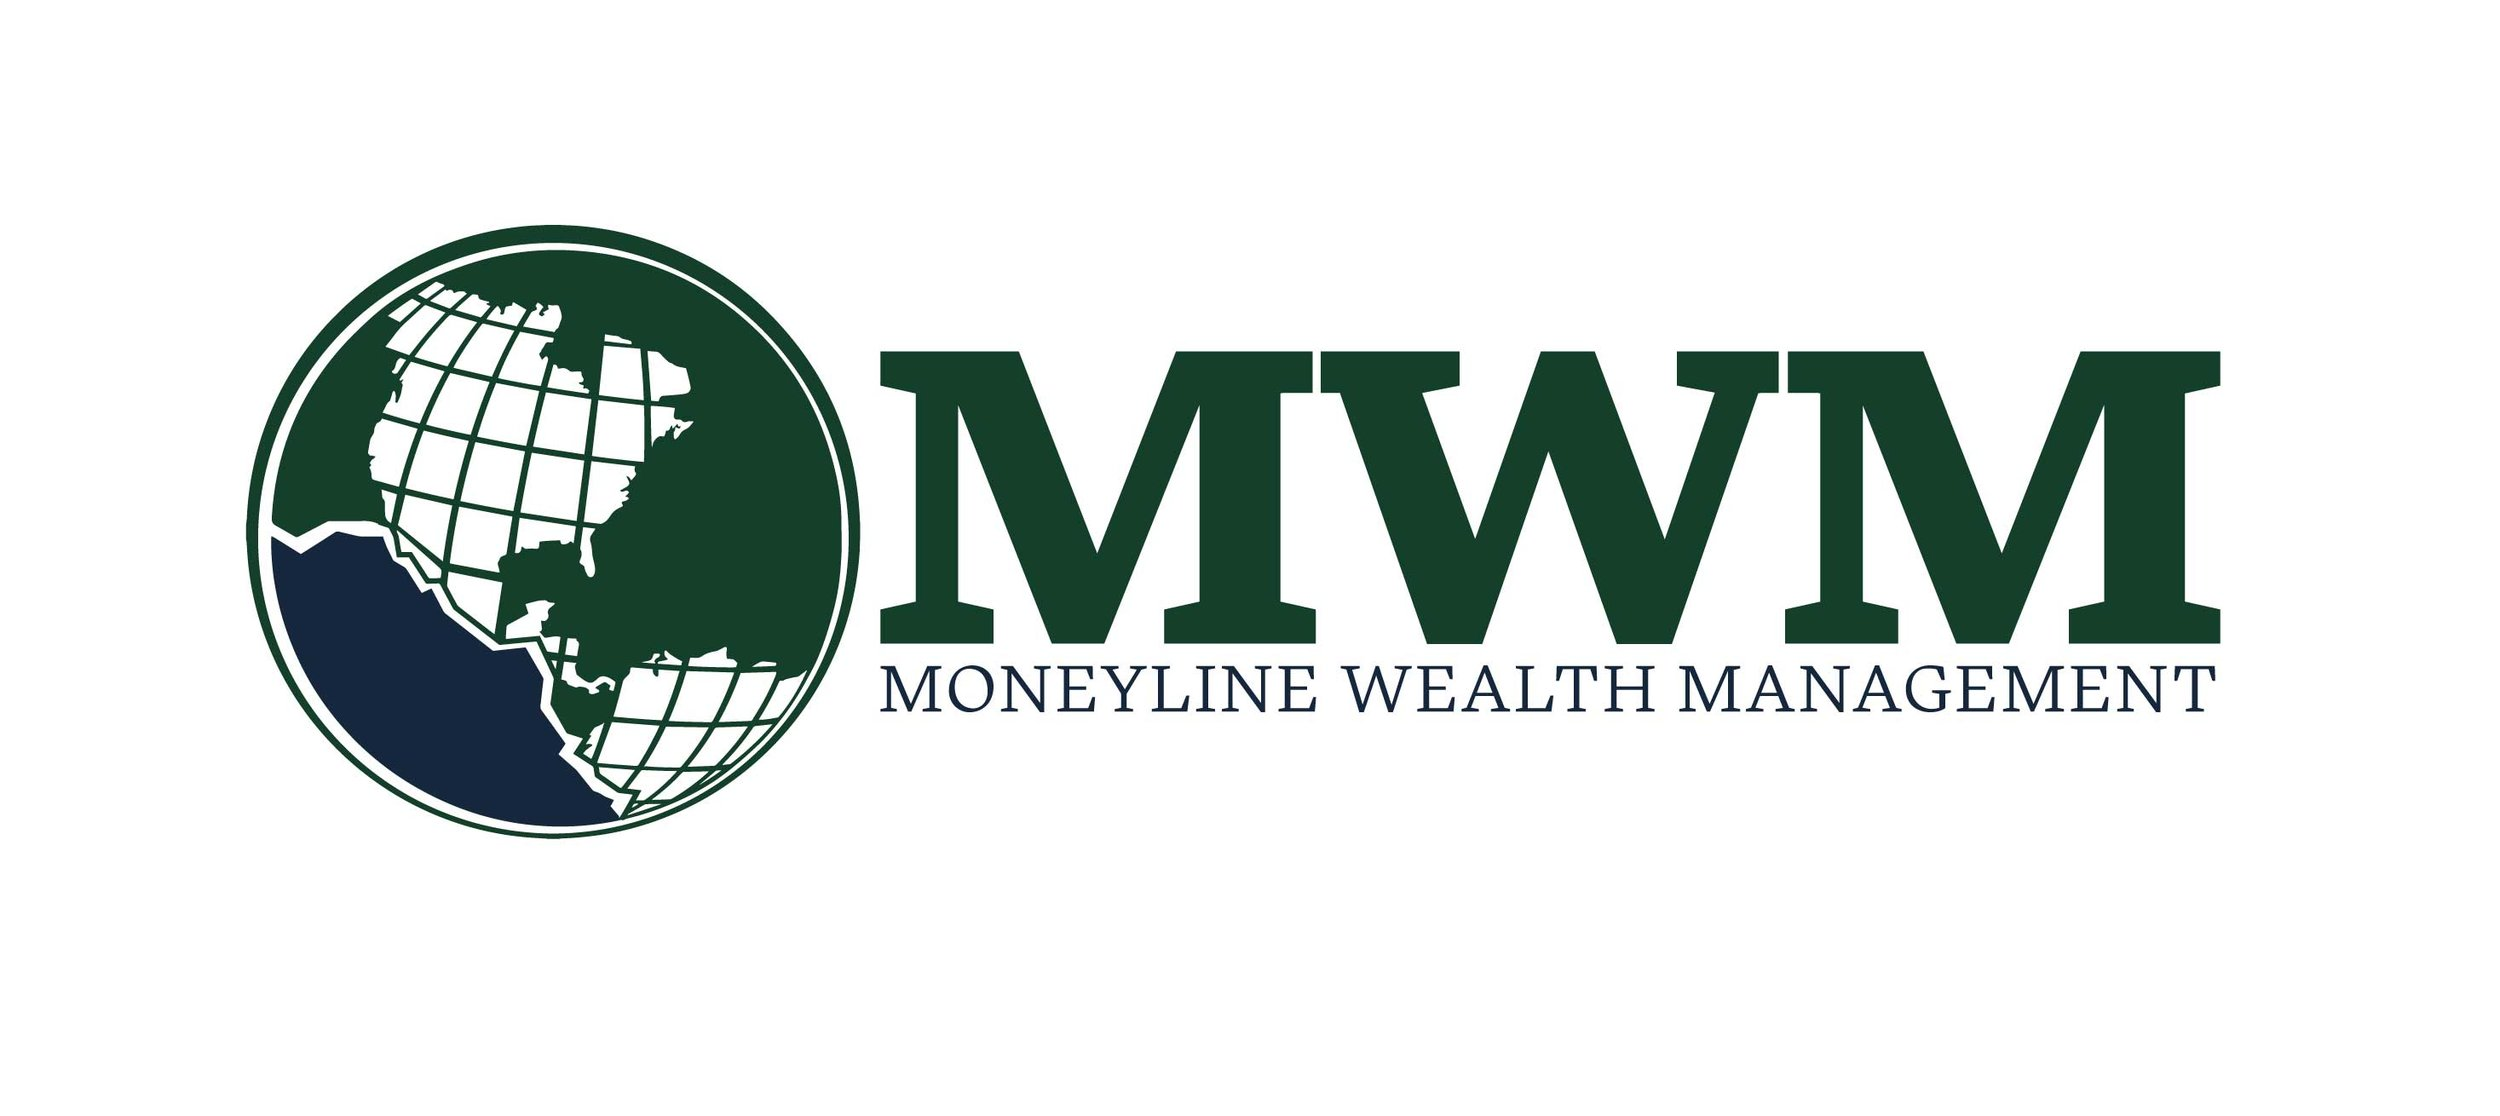 Money Wealth Management Logo